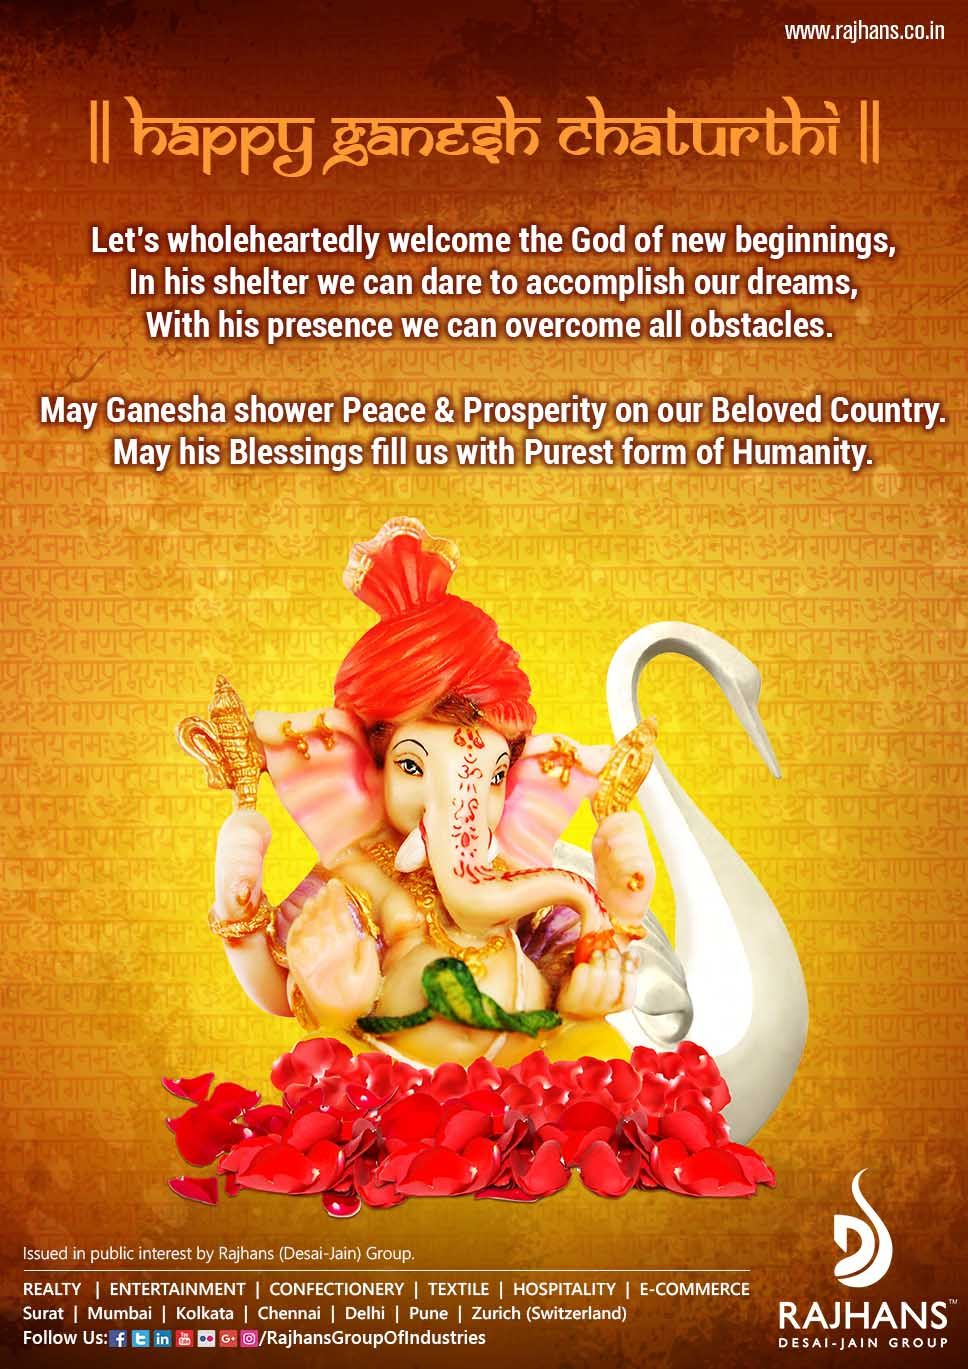 Rajhans Desai Jain Group wishes all of you